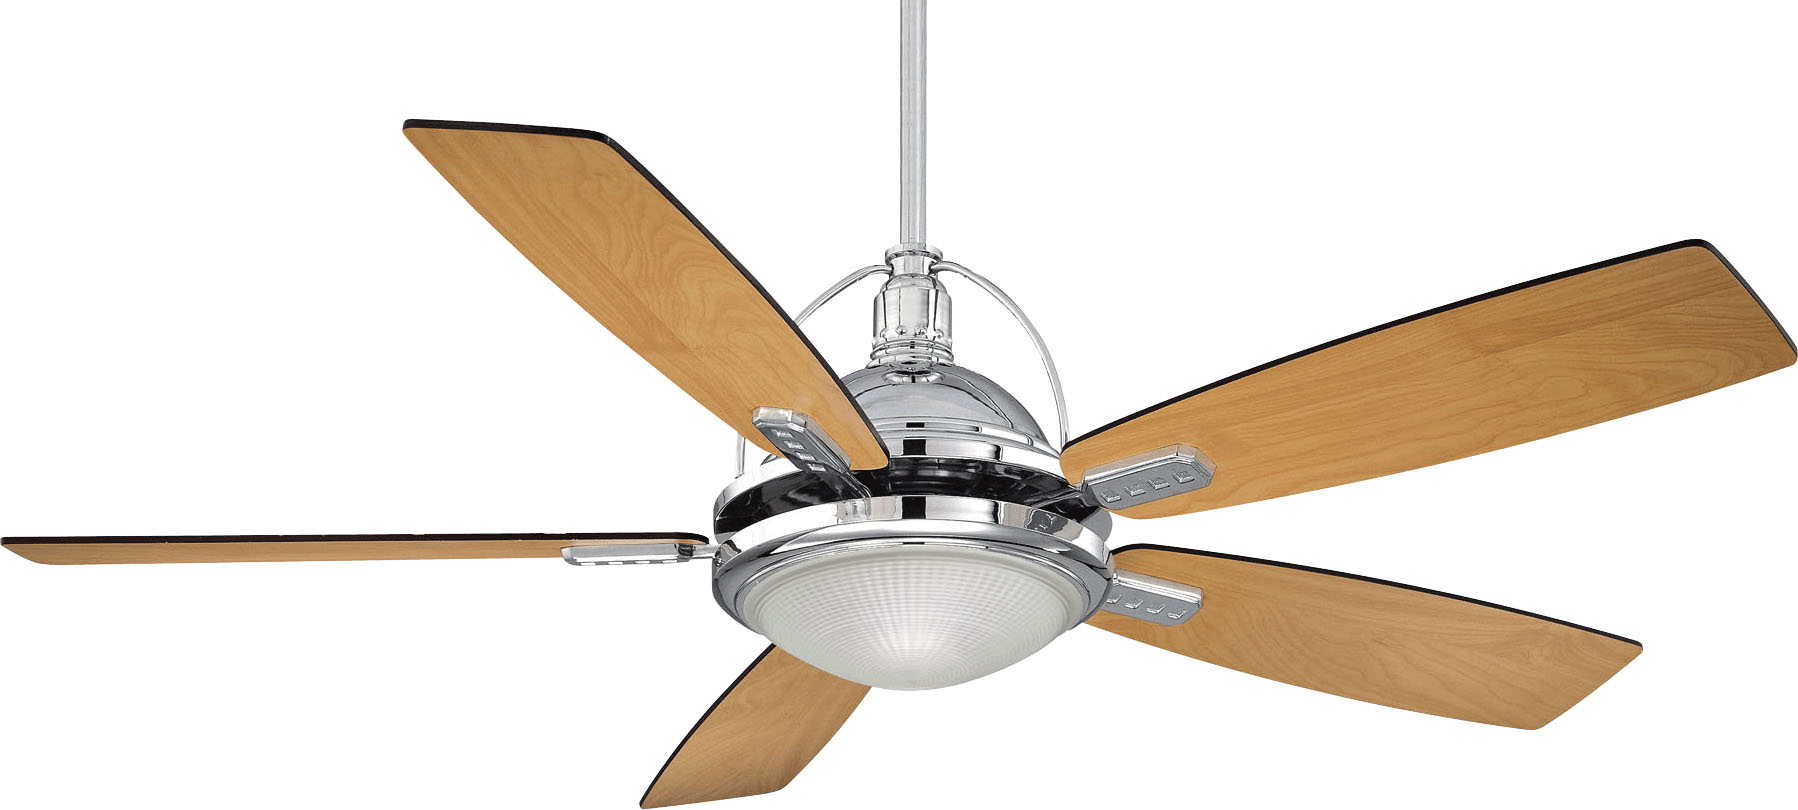 Electrician Cost To Install Ceiling Fan